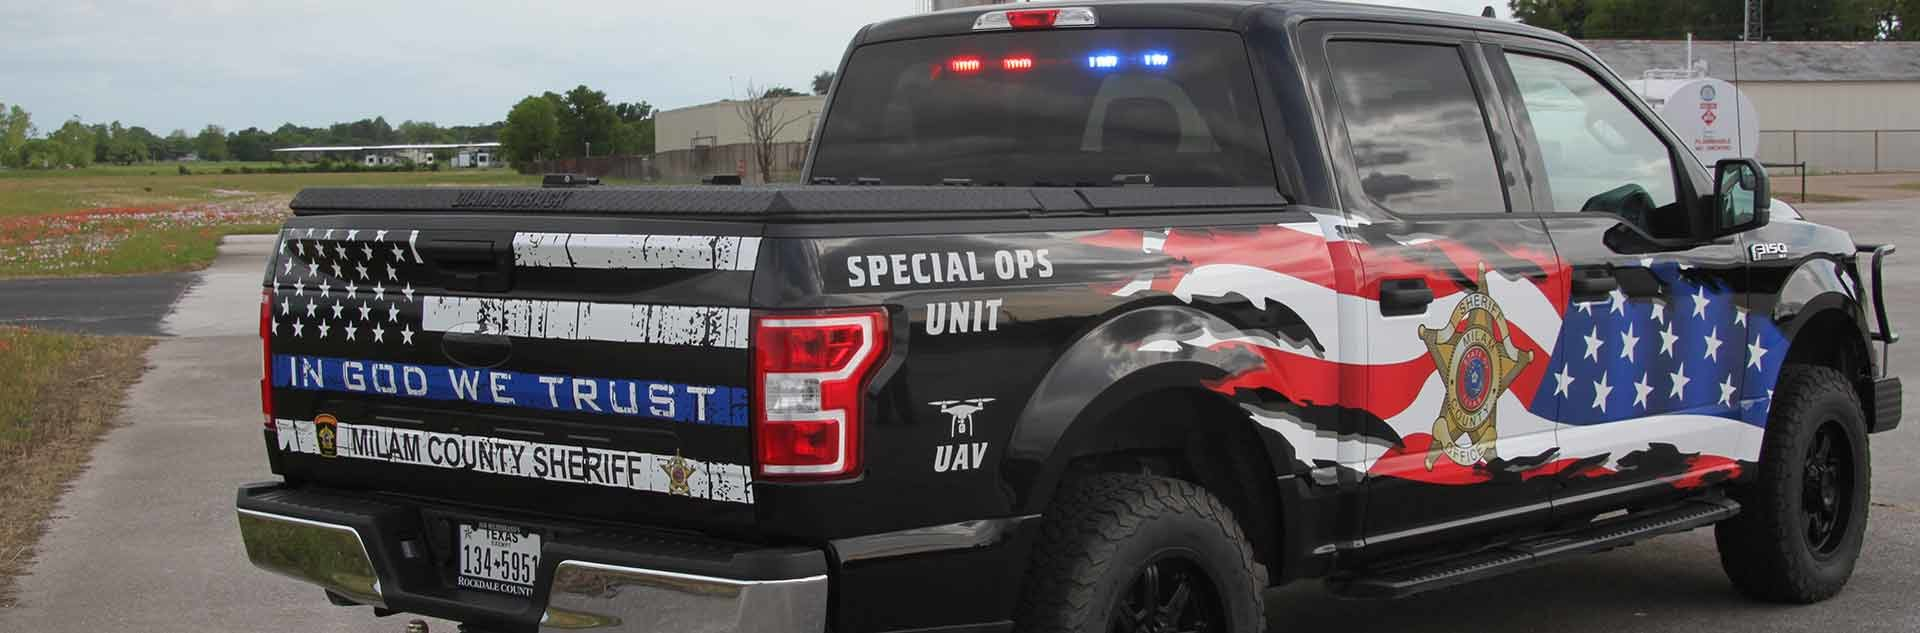 Black 4-door extended cab truck with red and blue lights in the back window. On the tail gate a black and white American flag, In God We Trust in white text, Milam County Sheriff in black text, Special Ops Unit in white text on the passenger side back top fender, and UAV with an outline of a drone in white text on the passenger side back bottom fender. On the passenger side back door is the Milam County Sheriff's Office badge. Across the front and back passenger side doors is a partial American Flag.